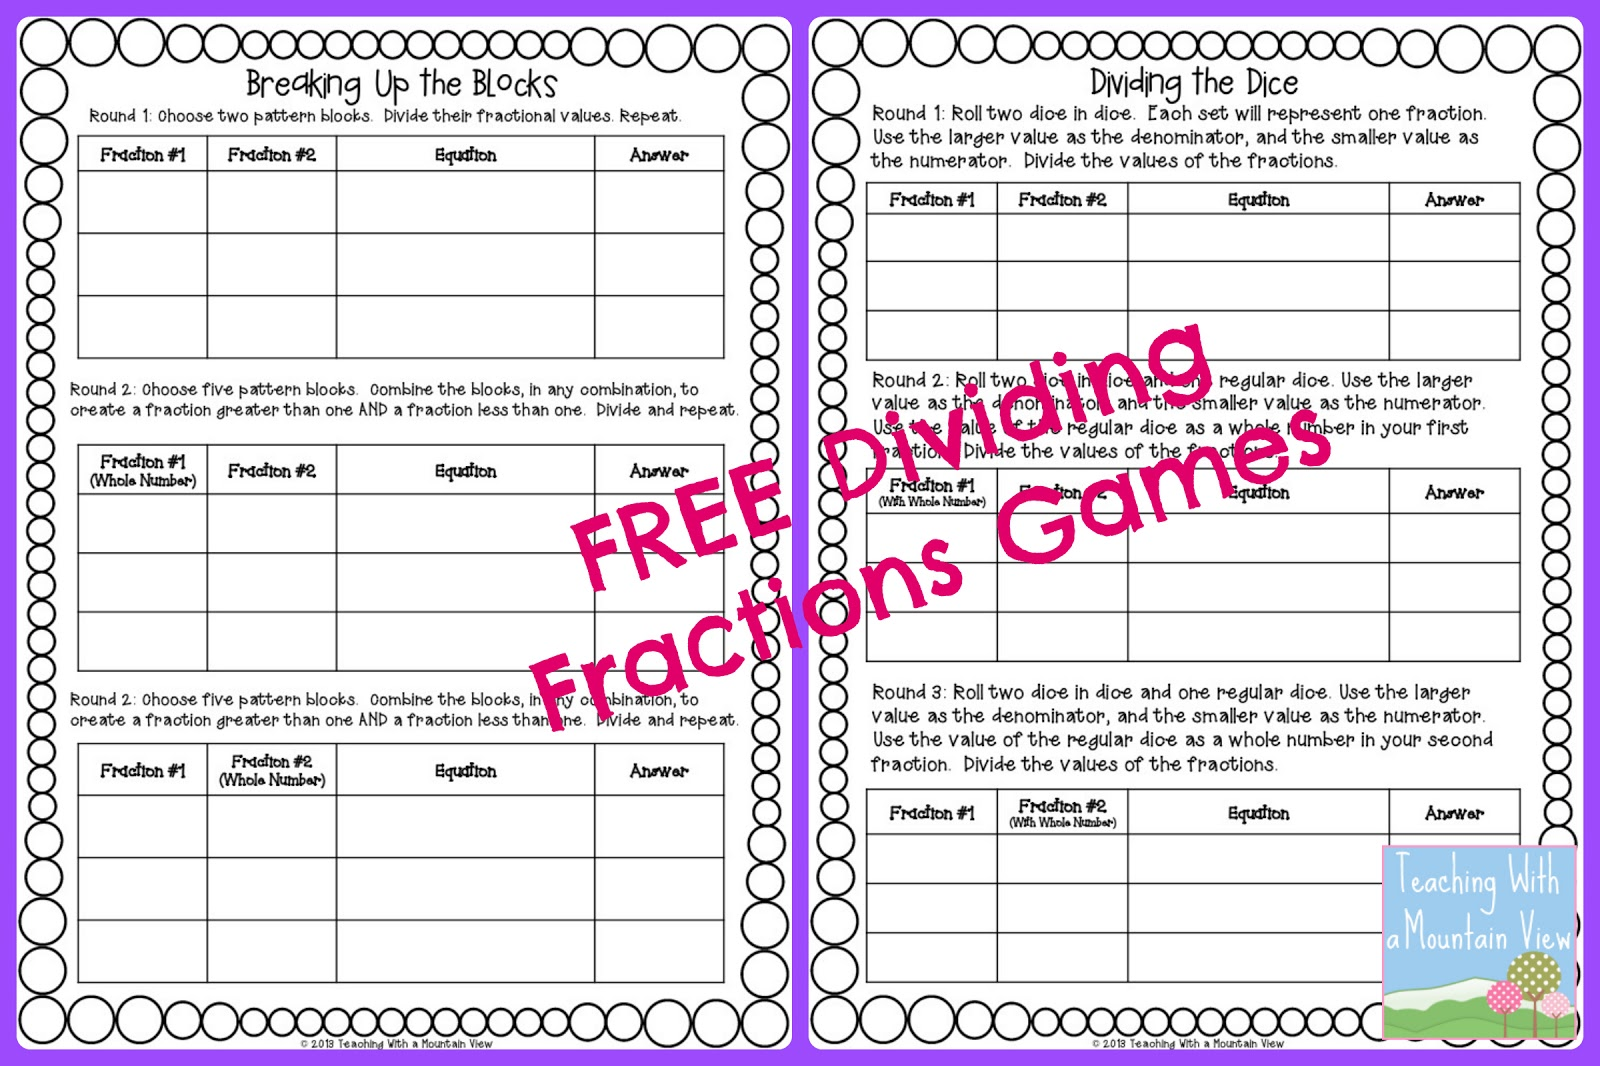 picture regarding Dividing Fractions Games Printable identified as Schooling With a Mountain Belief: Dividing Fractions Anchor